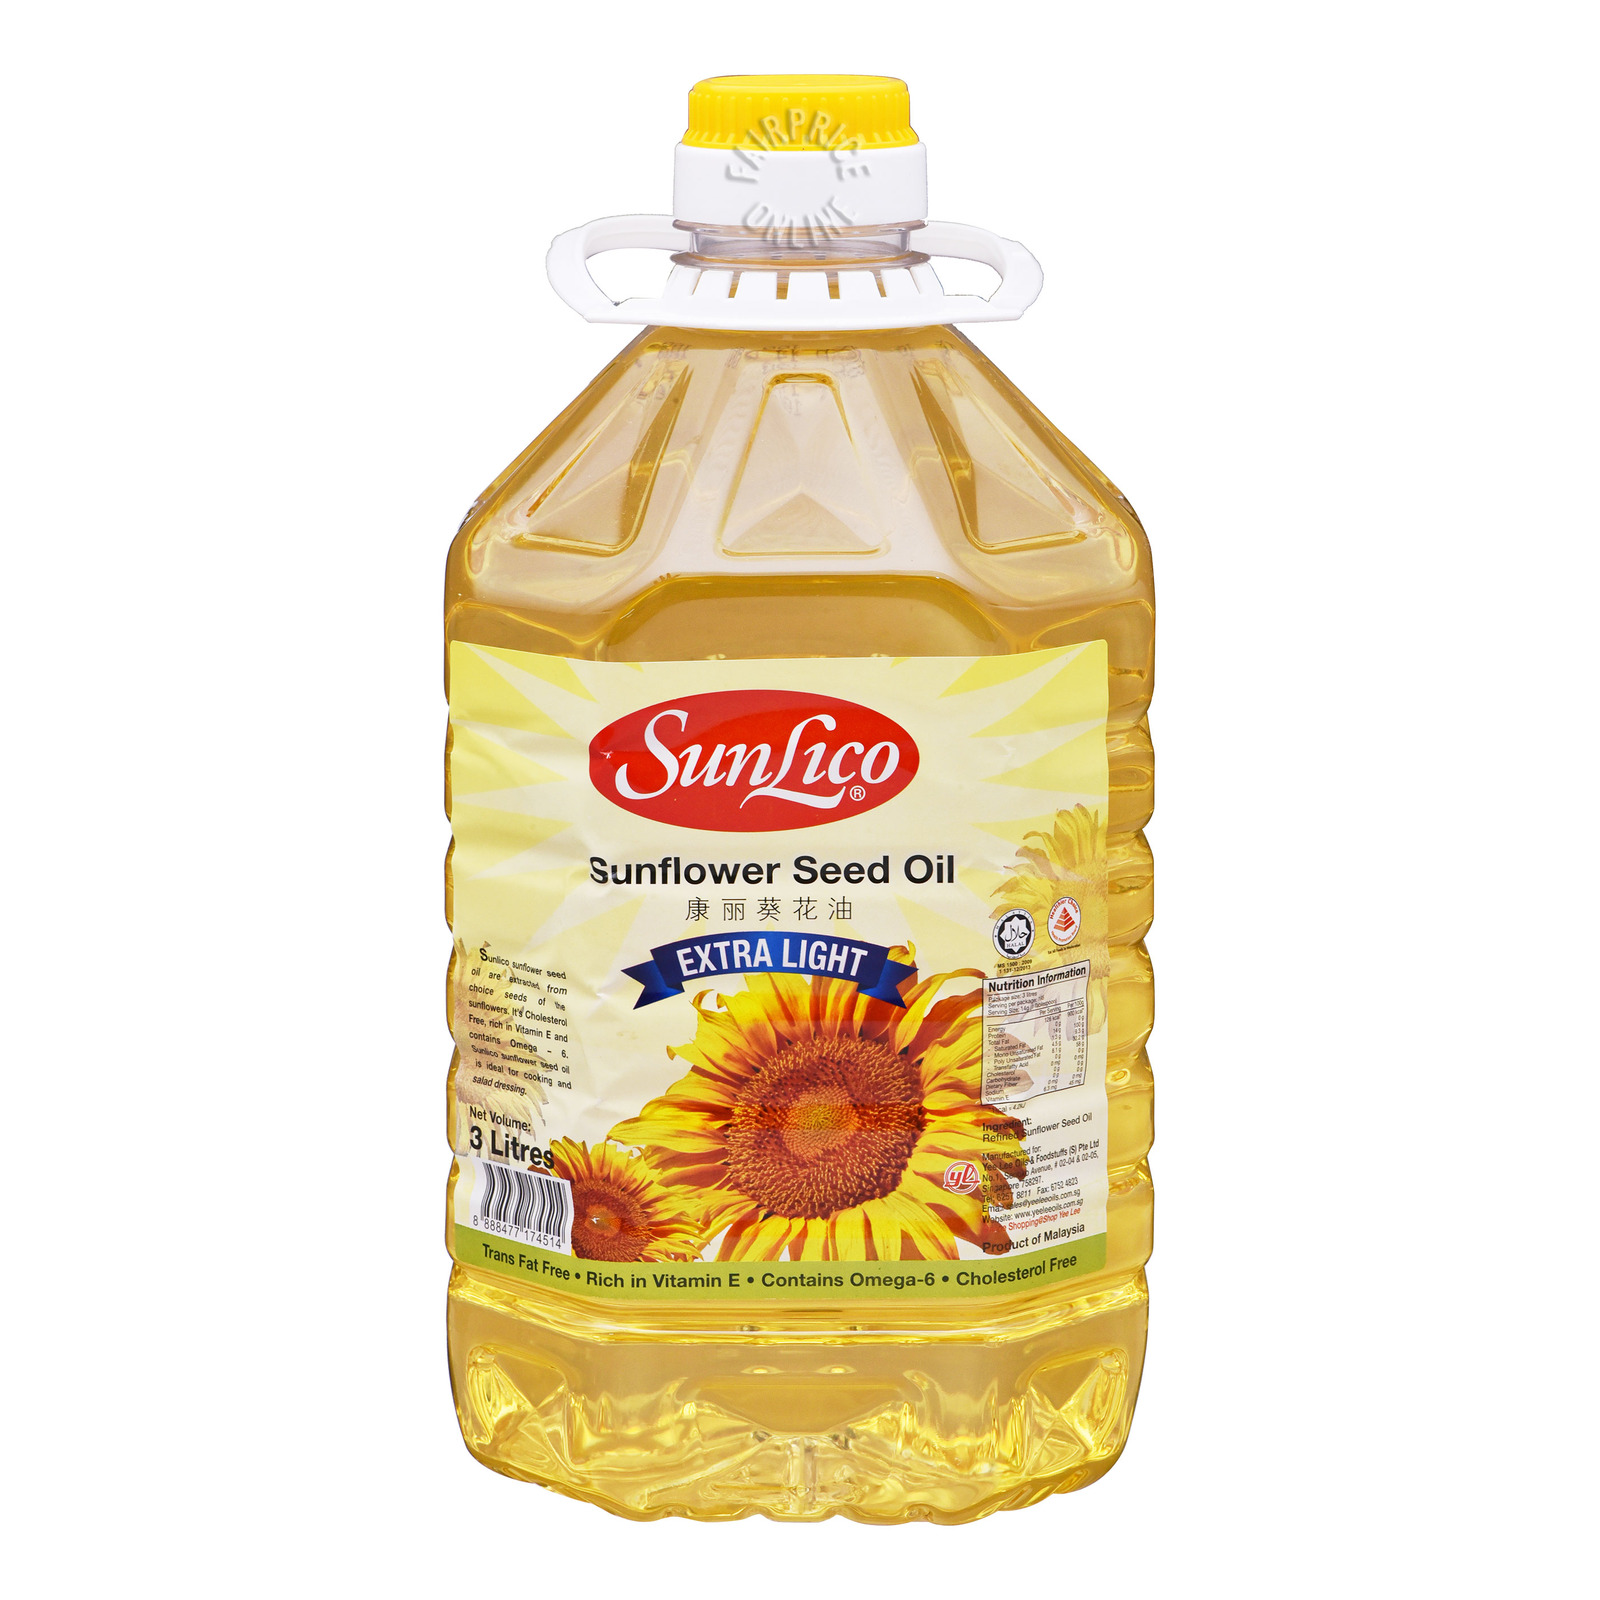 Sunlico Sunflower Seed Oil